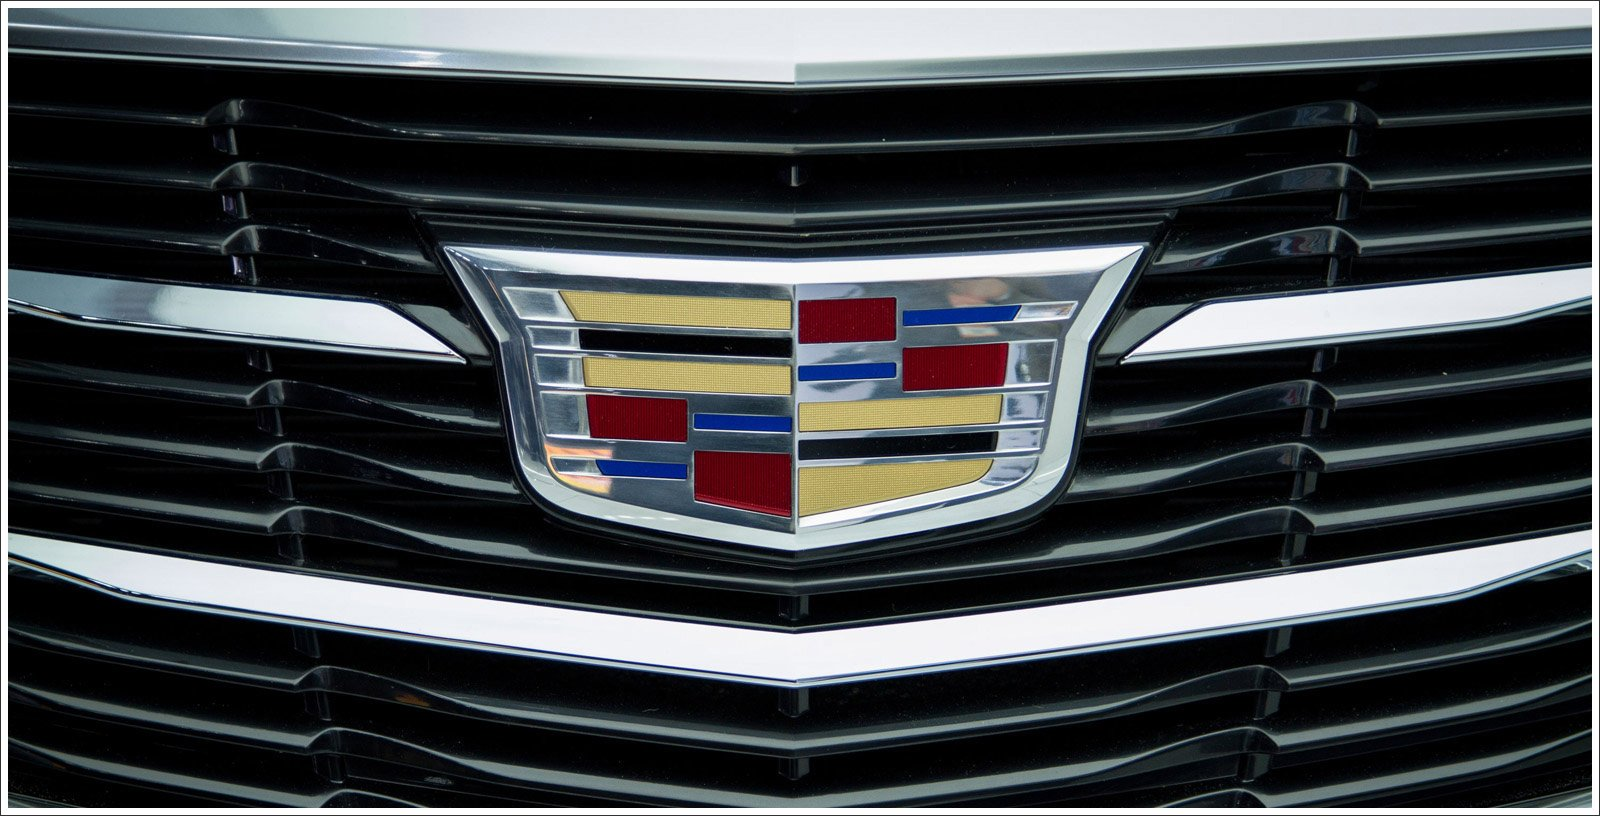 cadillac logo meaning and history latest models world cars brands. Black Bedroom Furniture Sets. Home Design Ideas